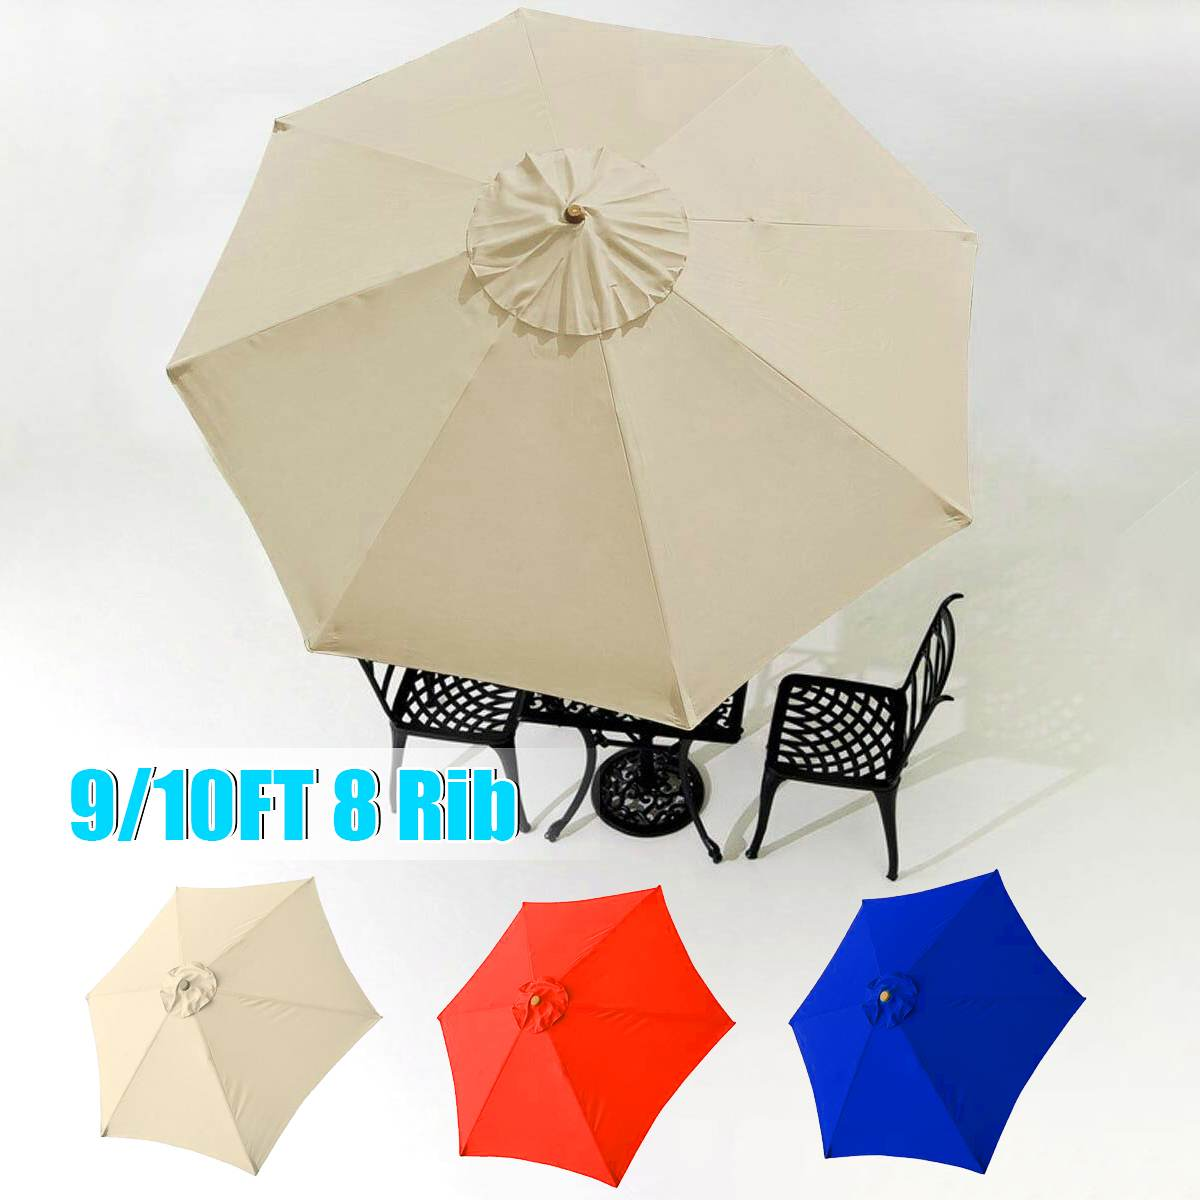 Patio Umbrella Top Canopy Replacement Cover Fit 9/10' 8 Rib Garden Outdoor Market Beach Waterproof Canopy Sun Shelter Cover